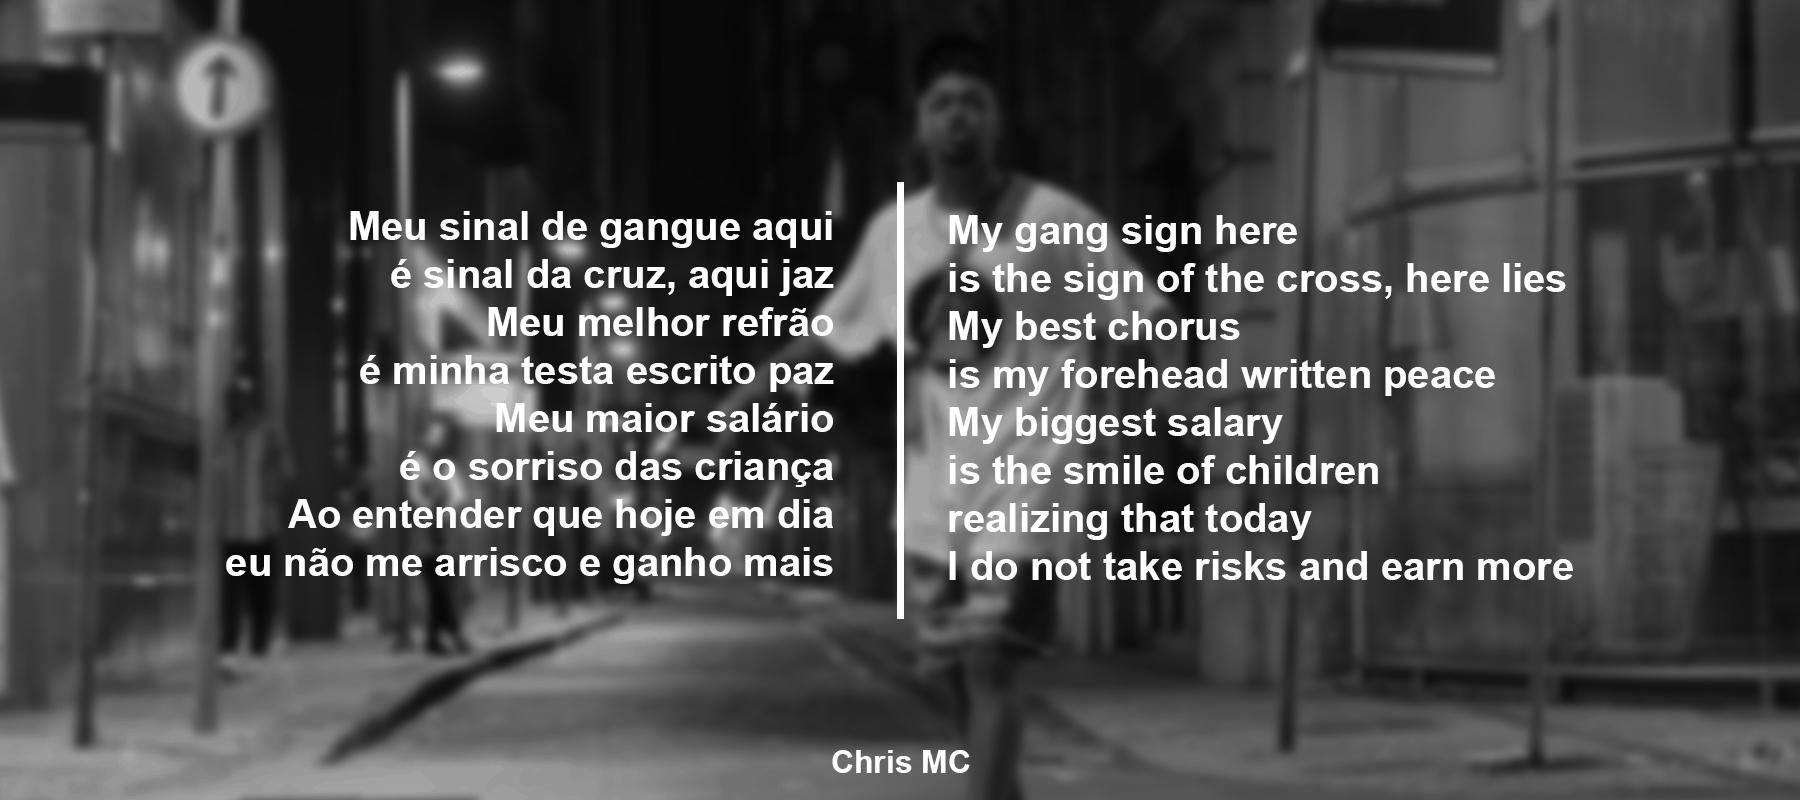 """My gang sign here is the sign of the cross"" ─ Chris MC [1800×800]"